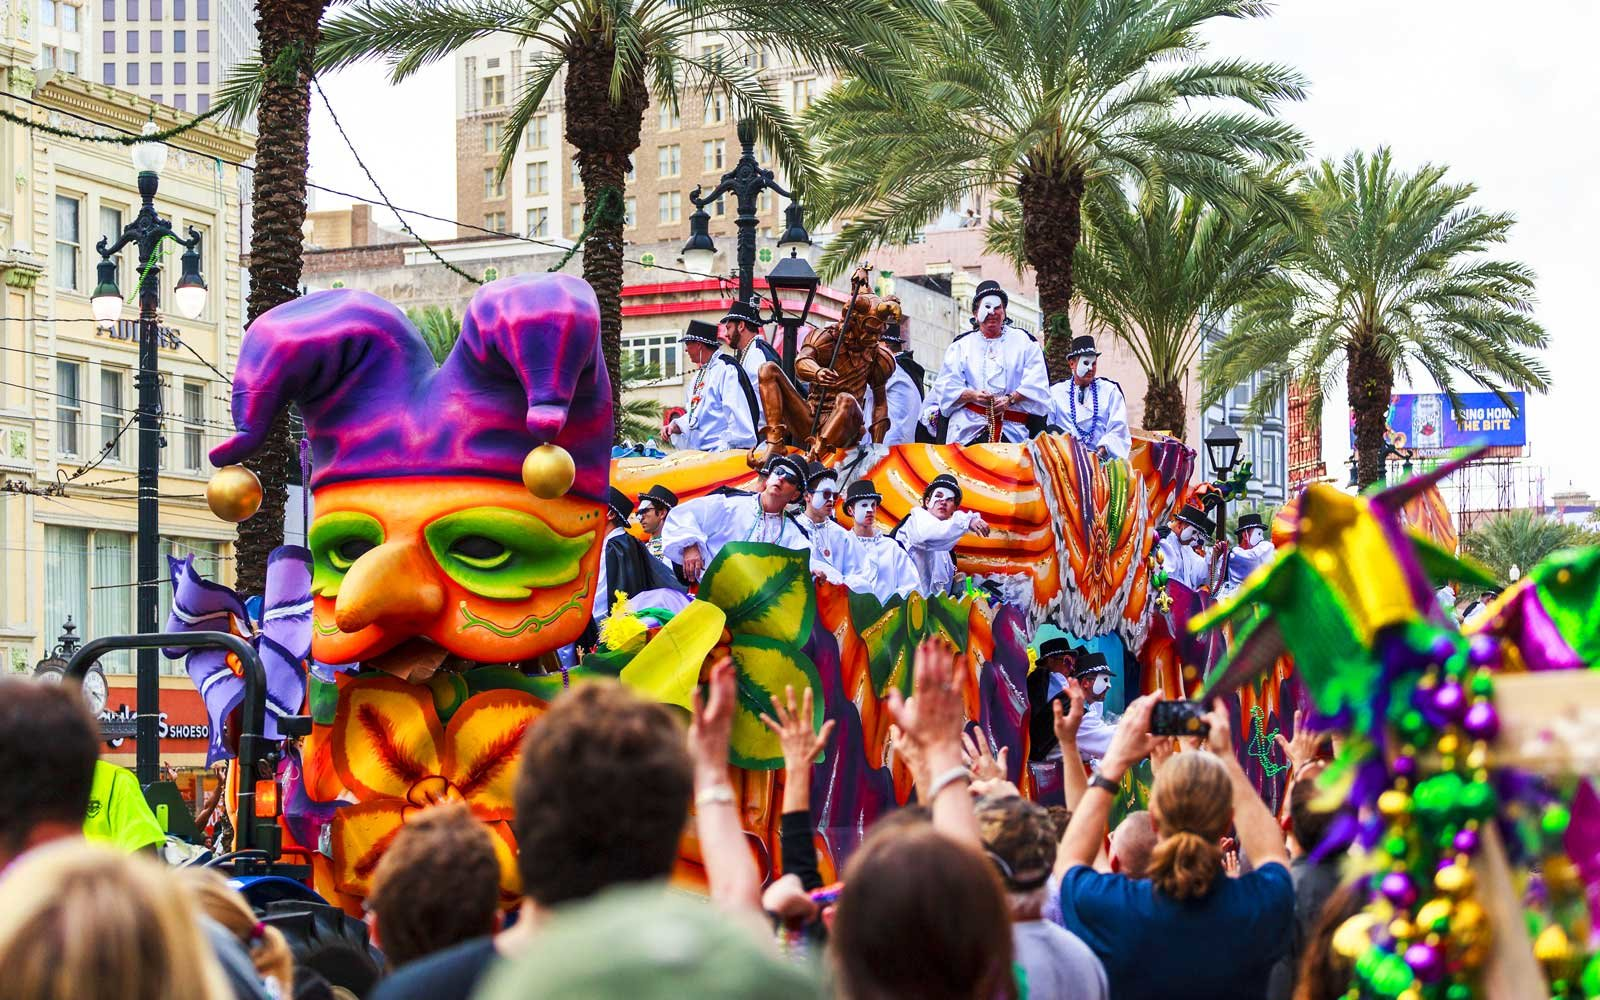 Mardi Gras parades through the streets of New Orleans. People arecelebrating and welcoming locals and visitors.Thisis the biggest annual celebrationof the city.